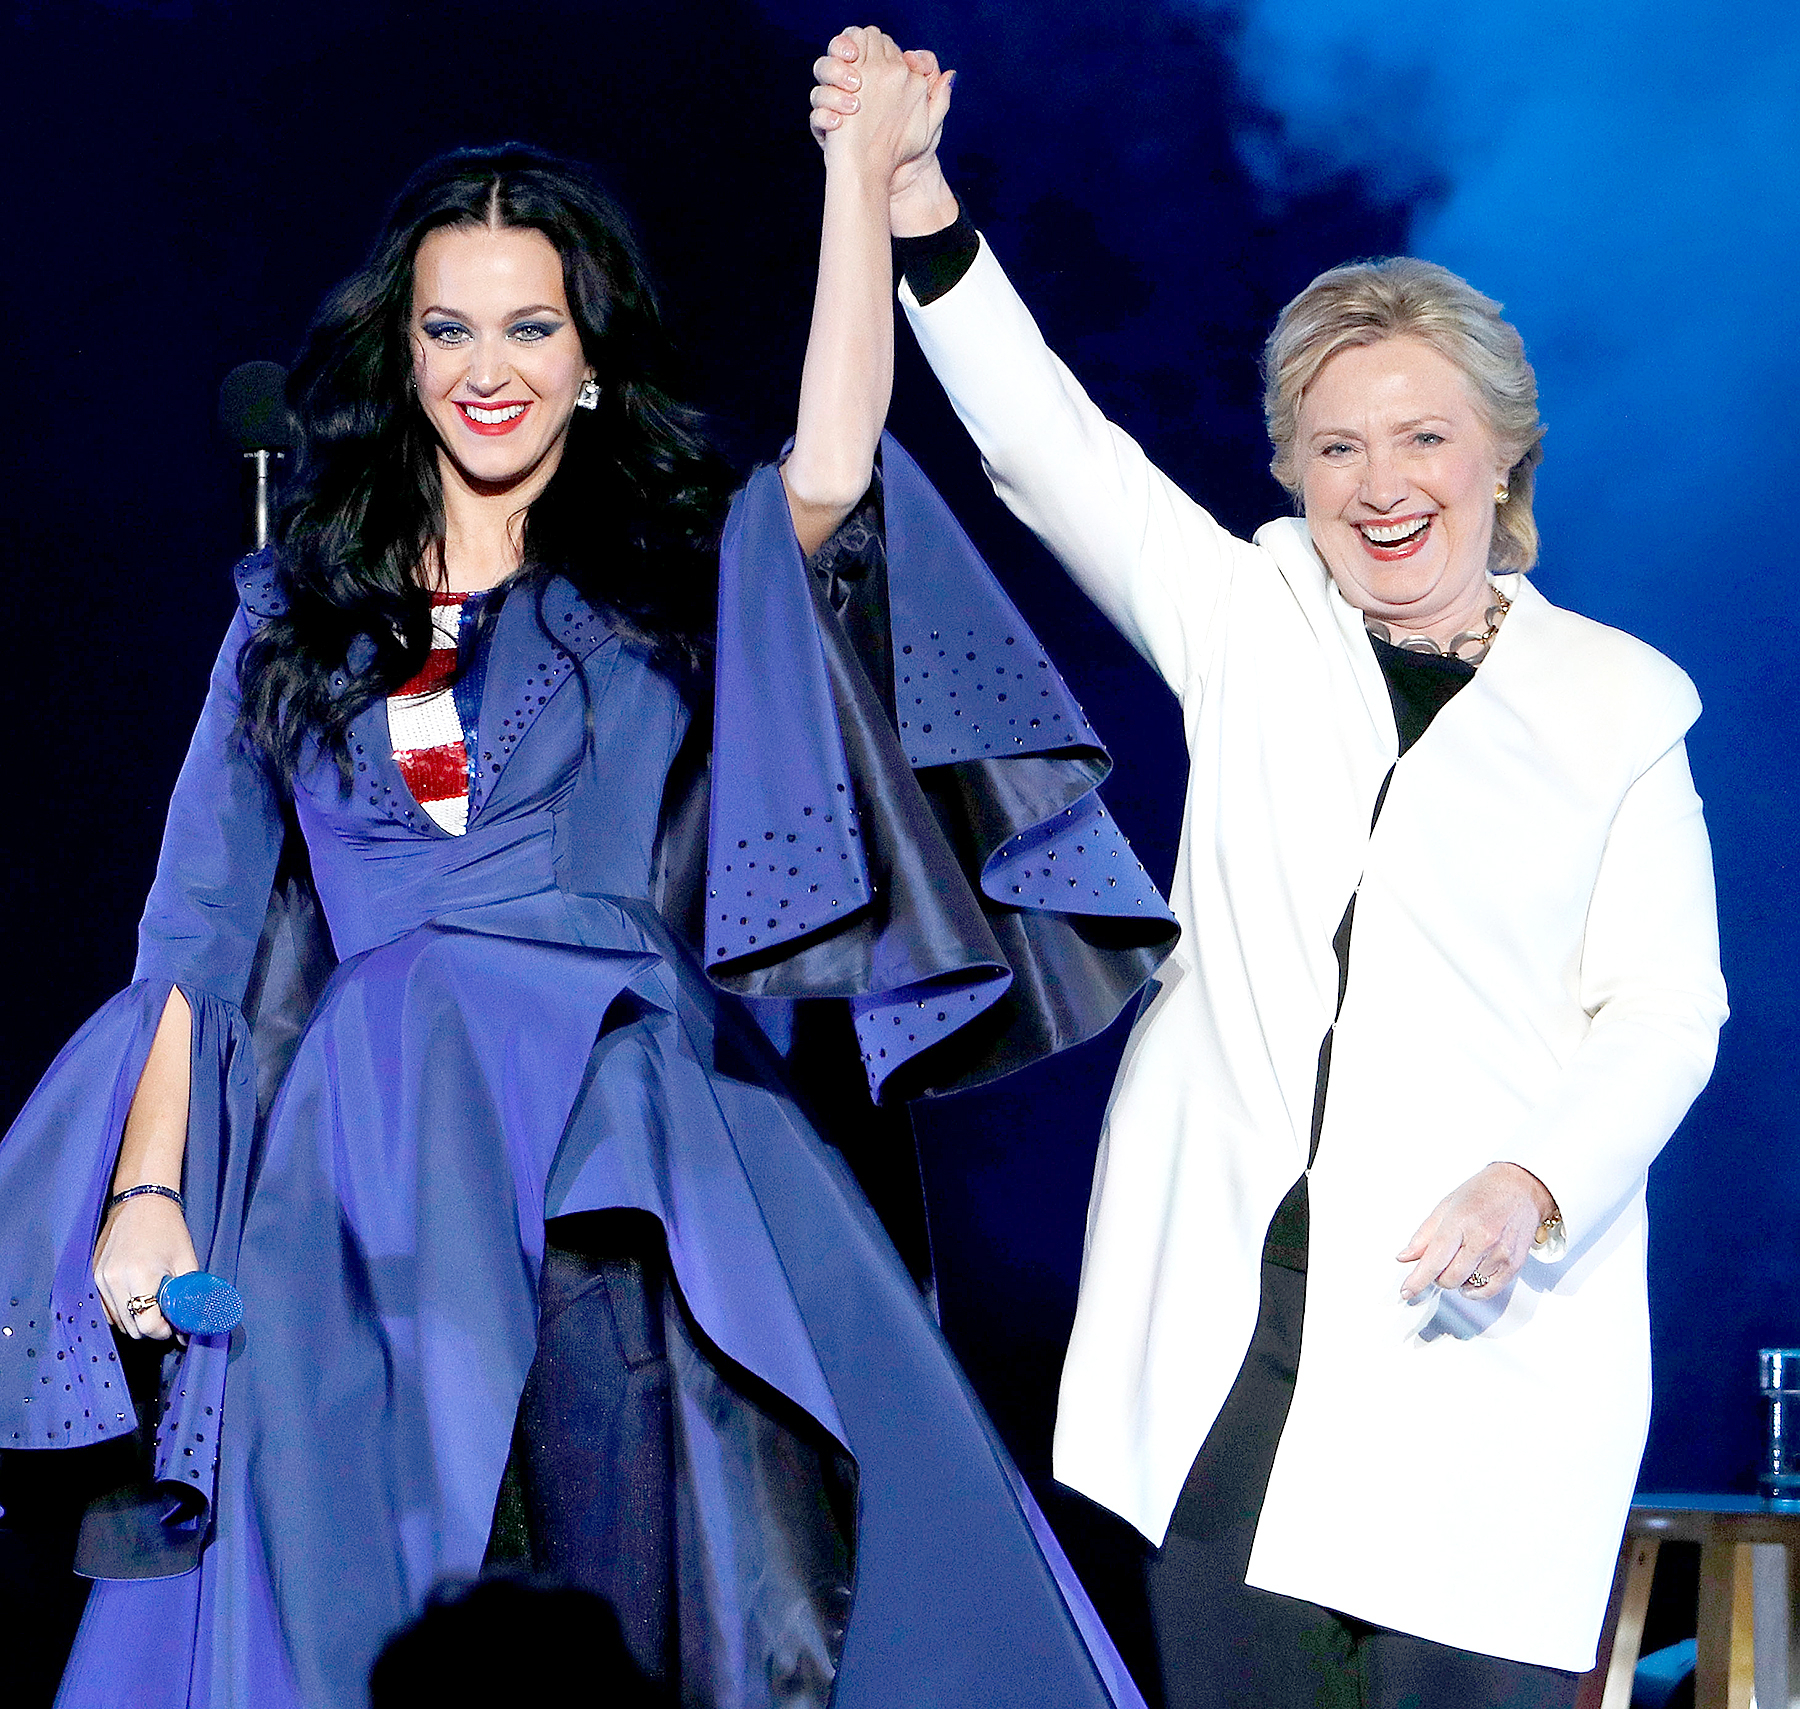 Katy Perry and Hillary Clinton attend a GOTV rally at Mann Center For Performing Arts on November 5, 2016 in Philadelphia, Pennsylvania.